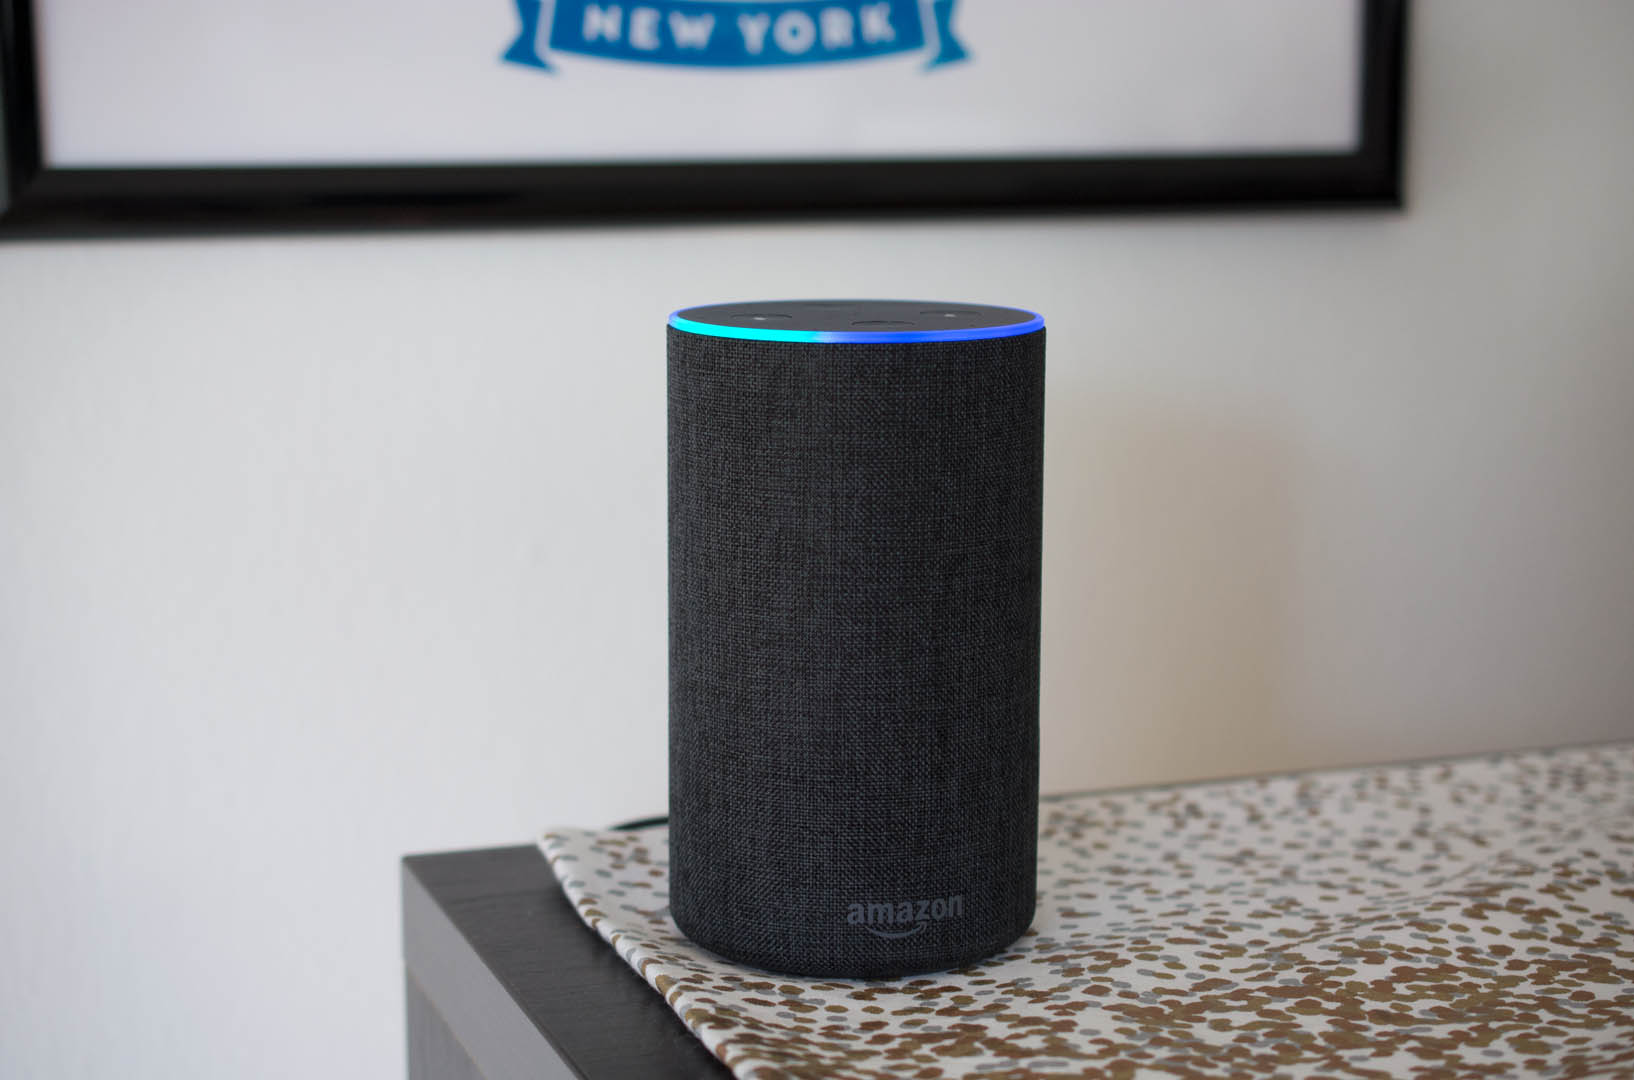 Amazon's Alexa, virtual assistant